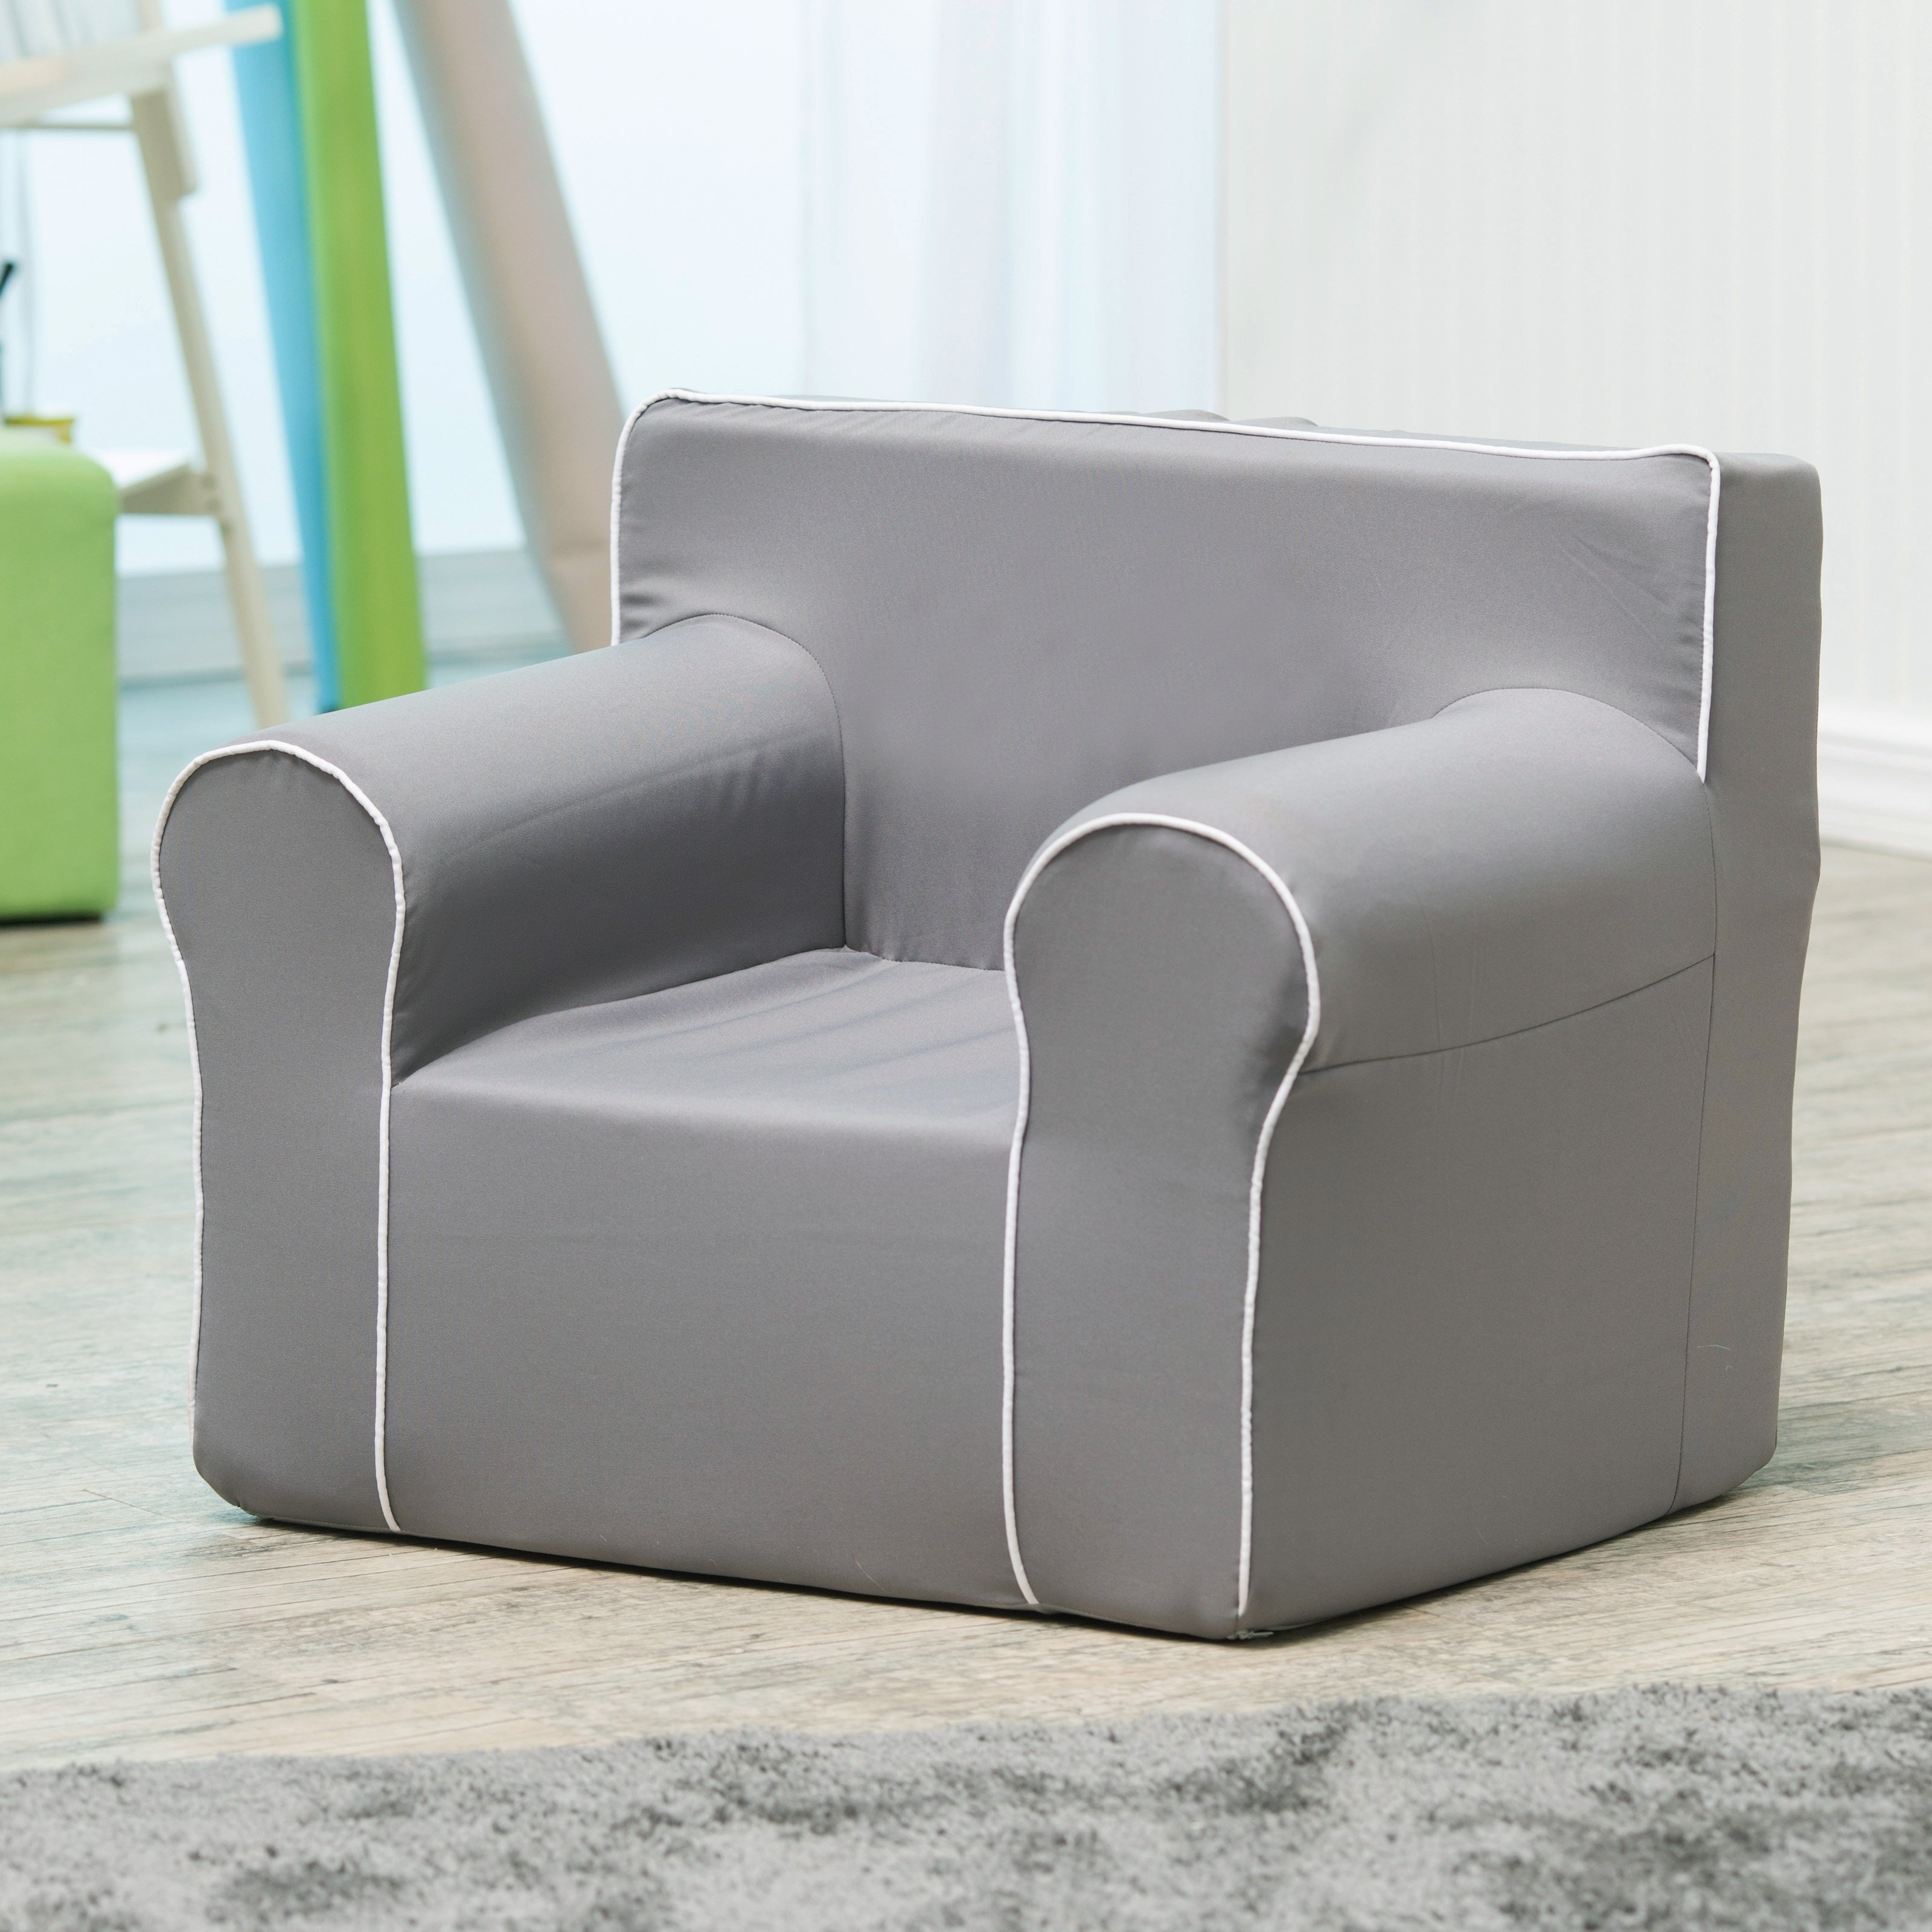 Hayneedle In Personalized Kids Chairs And Sofas (View 9 of 15)